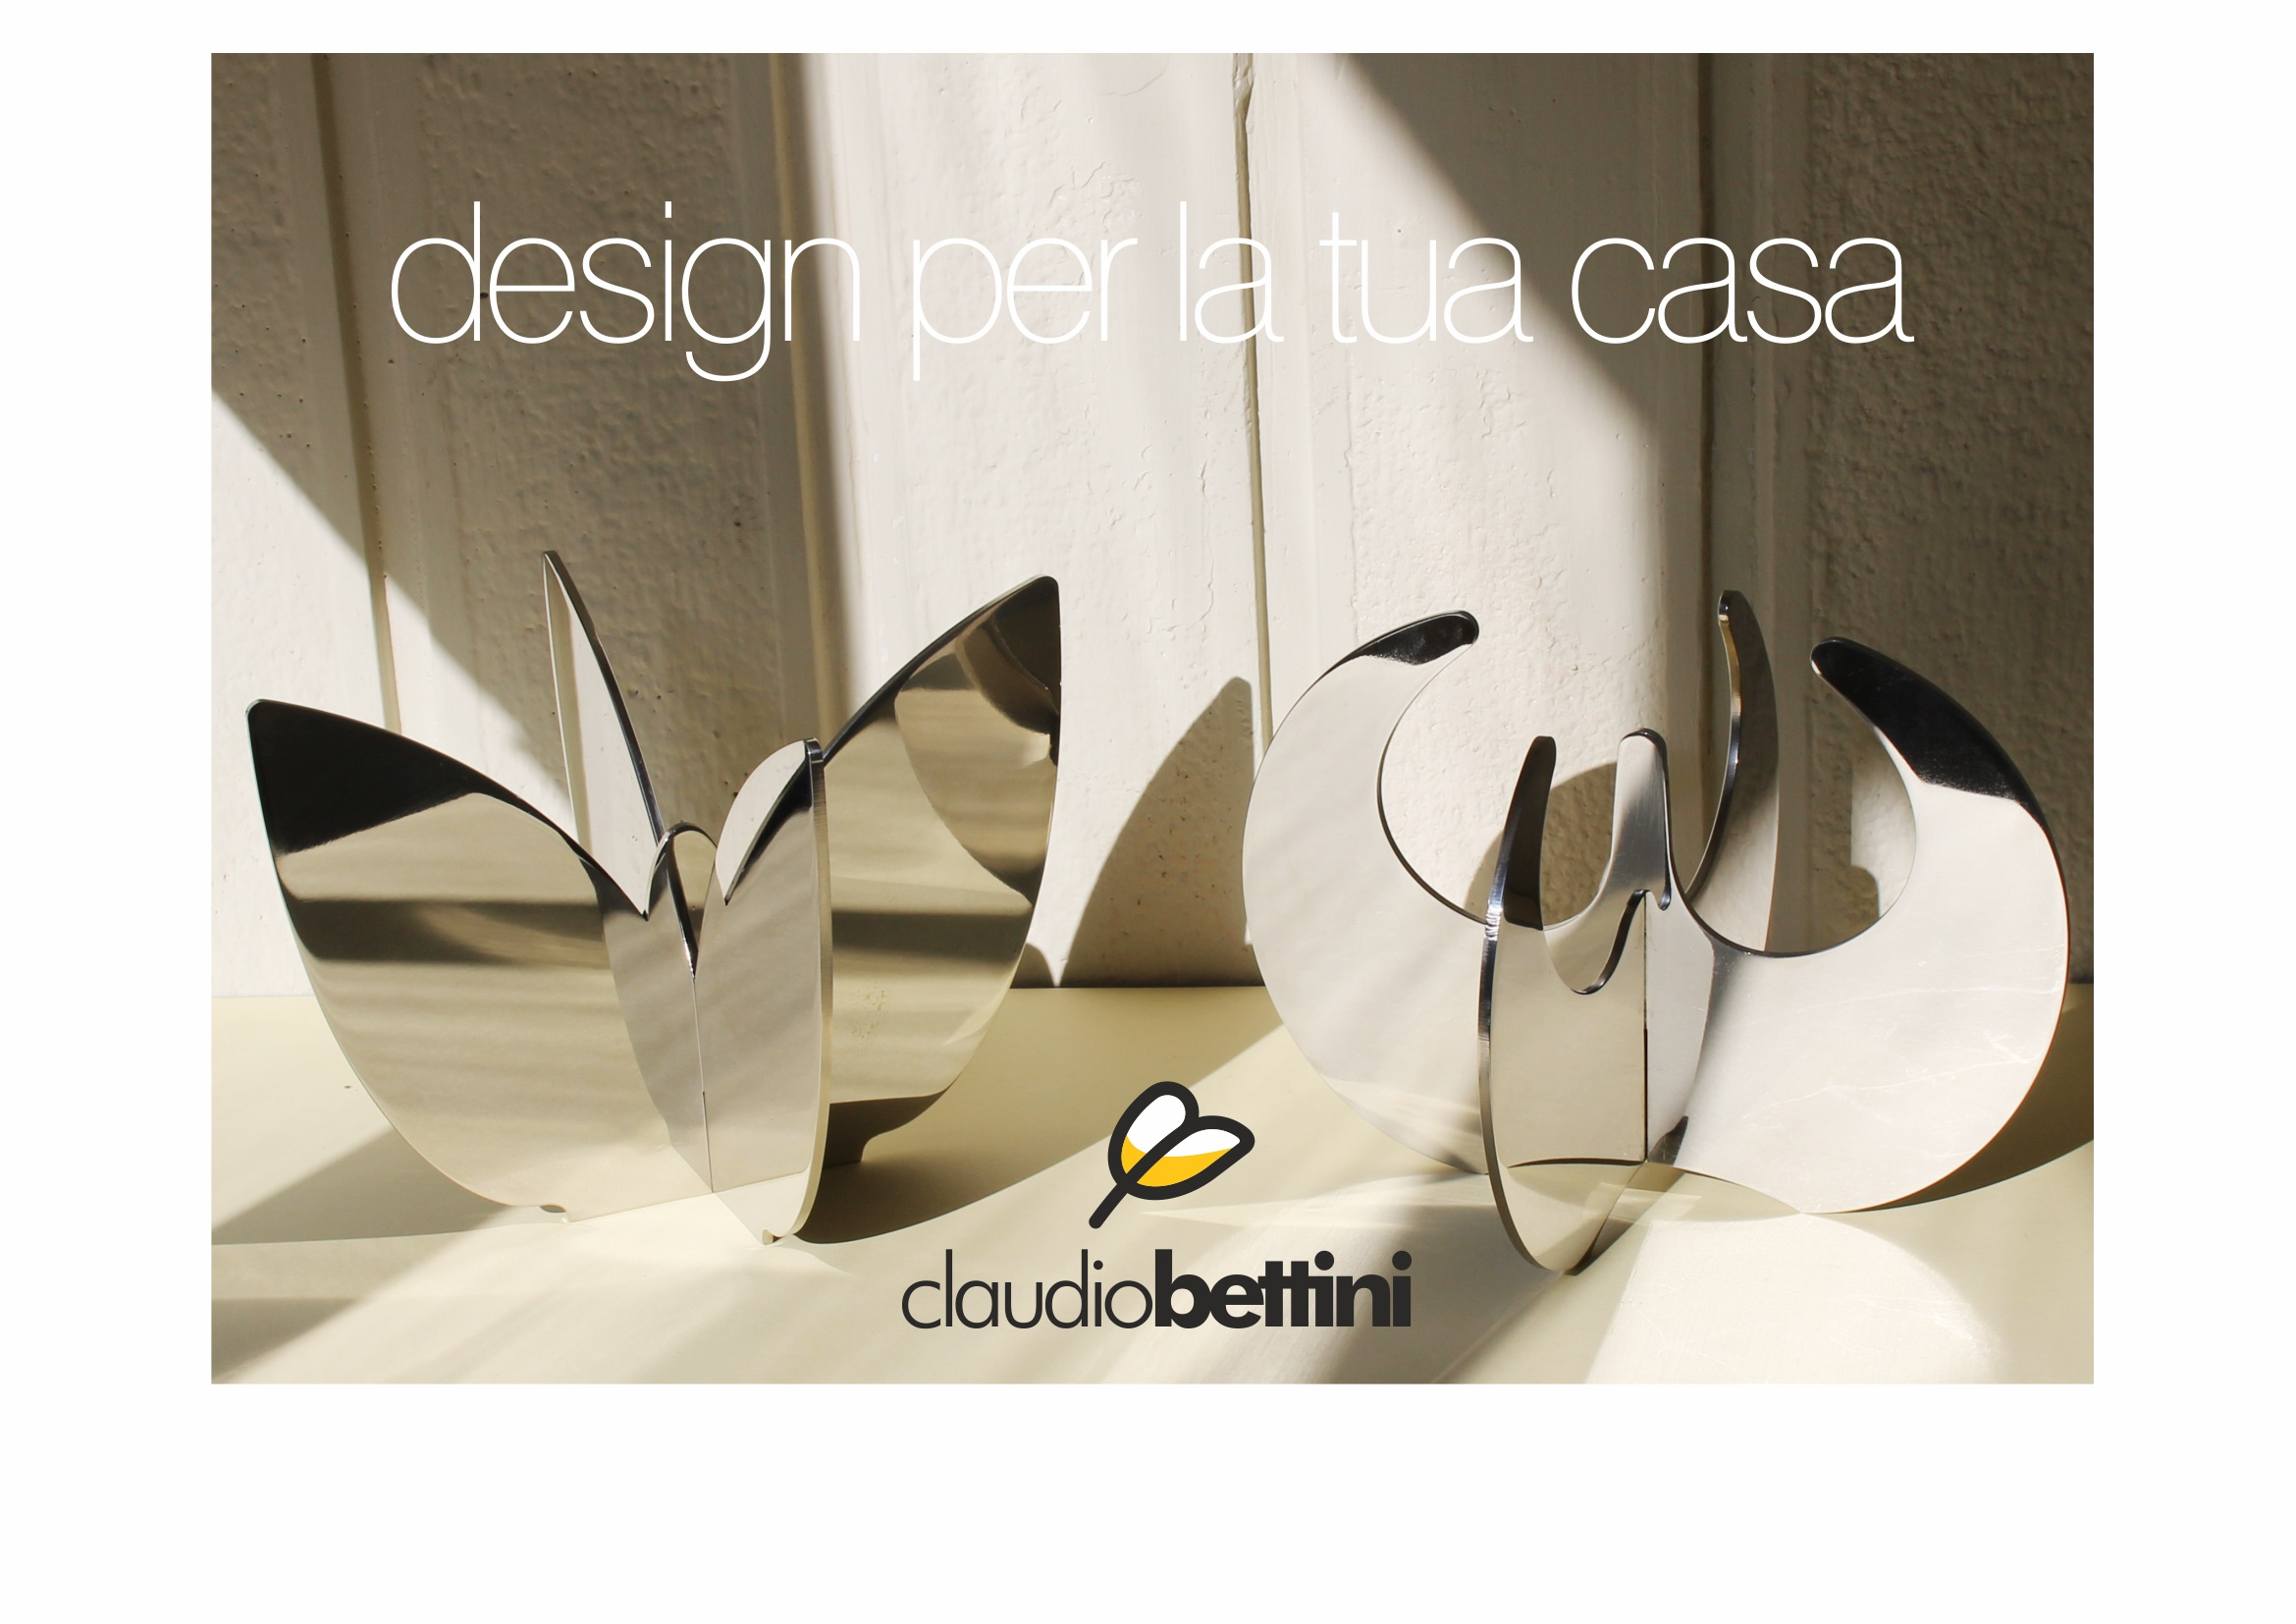 Arredo e oggetti di design per la casa claudio bettini shop for Oggetti di design per la casa on line